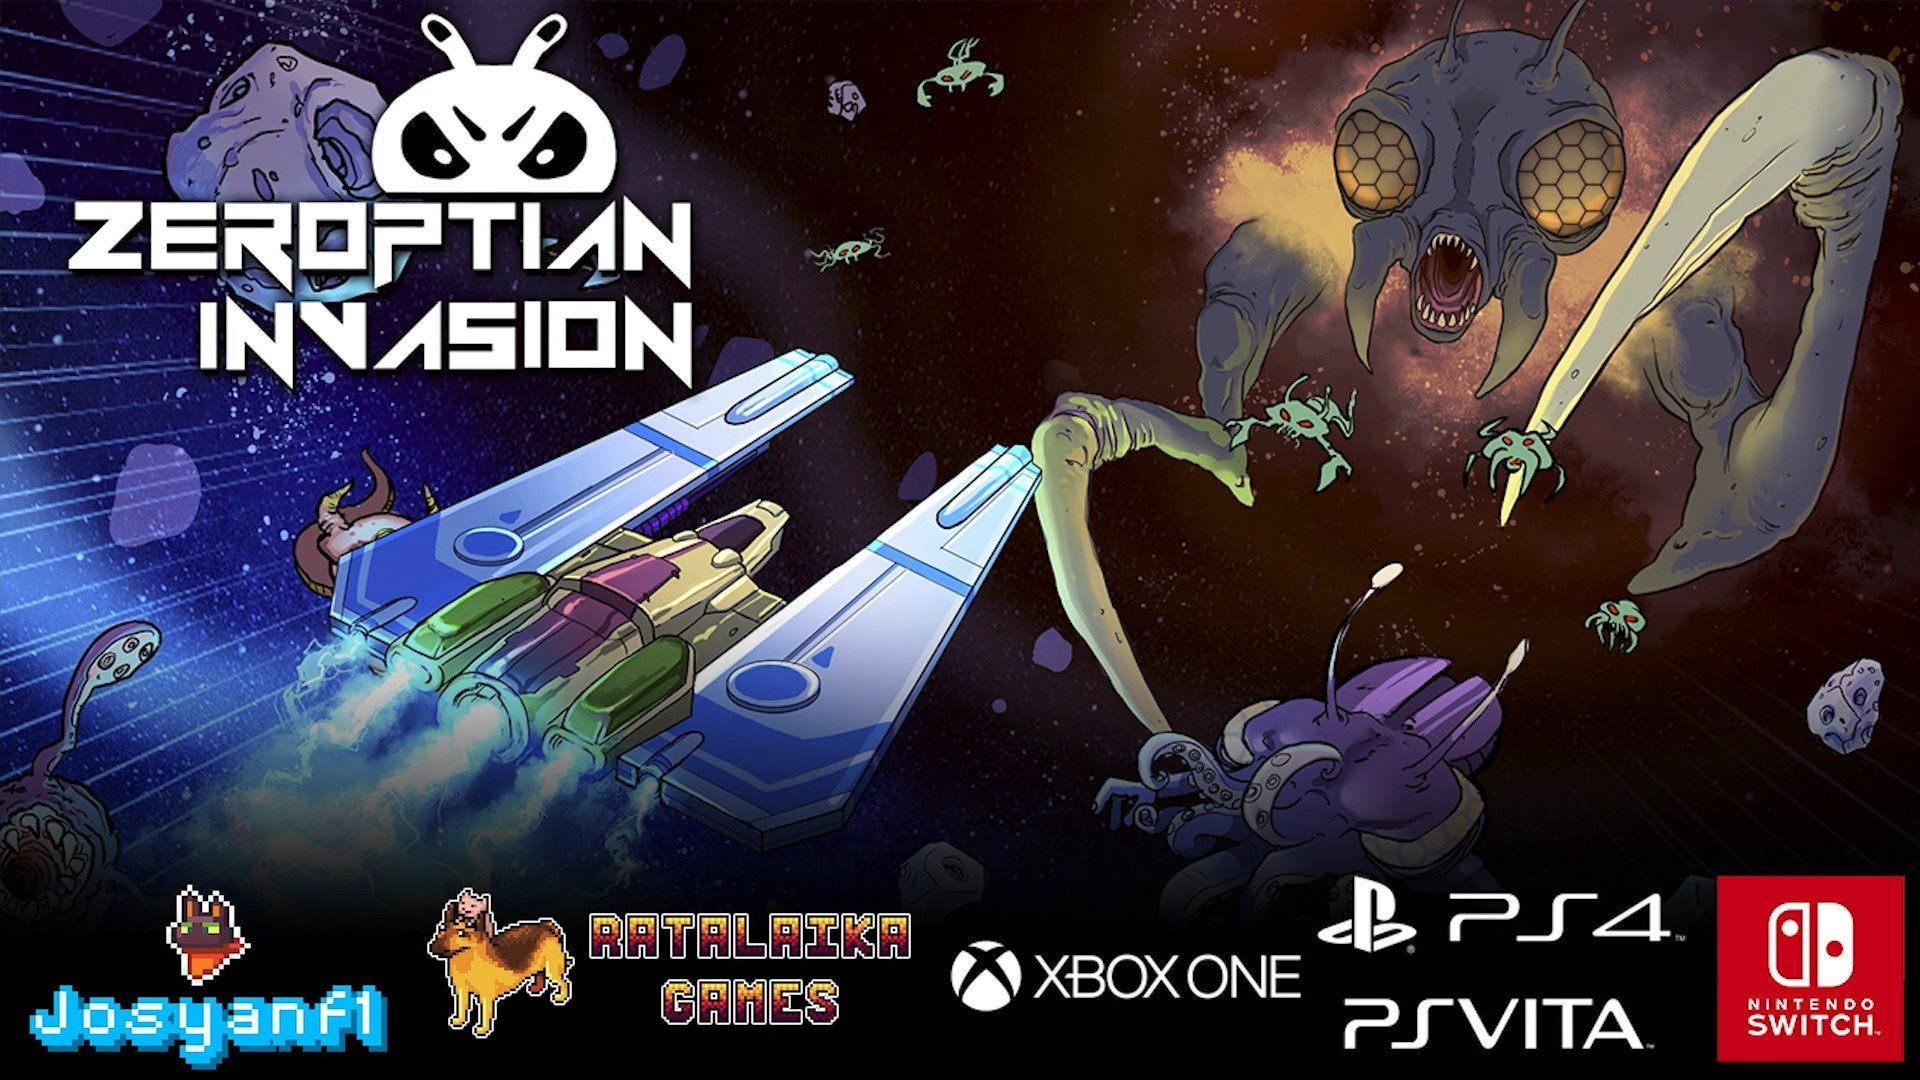 Zeroptian Invasion – PS4 | Review